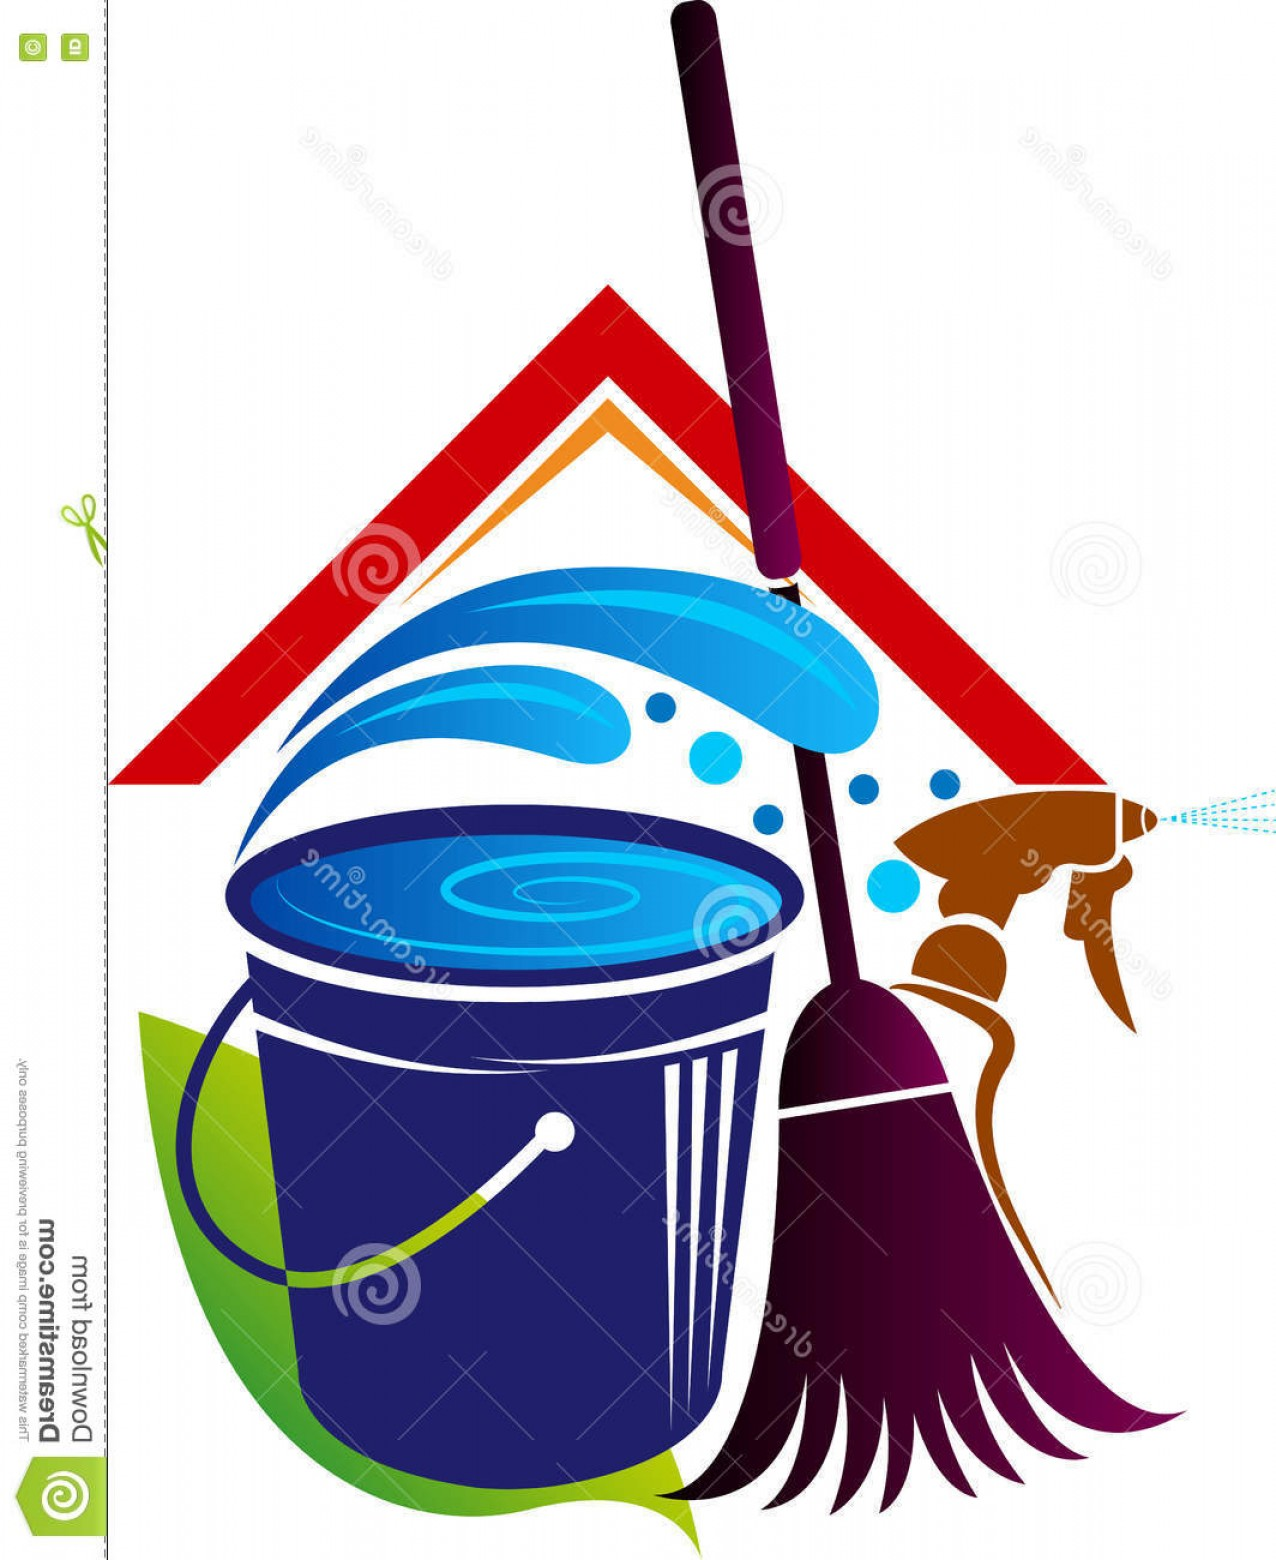 Cleaning Logo Vector Art: Stock Illustration House Cleaning Logo Illustration Art Isolated Background Image